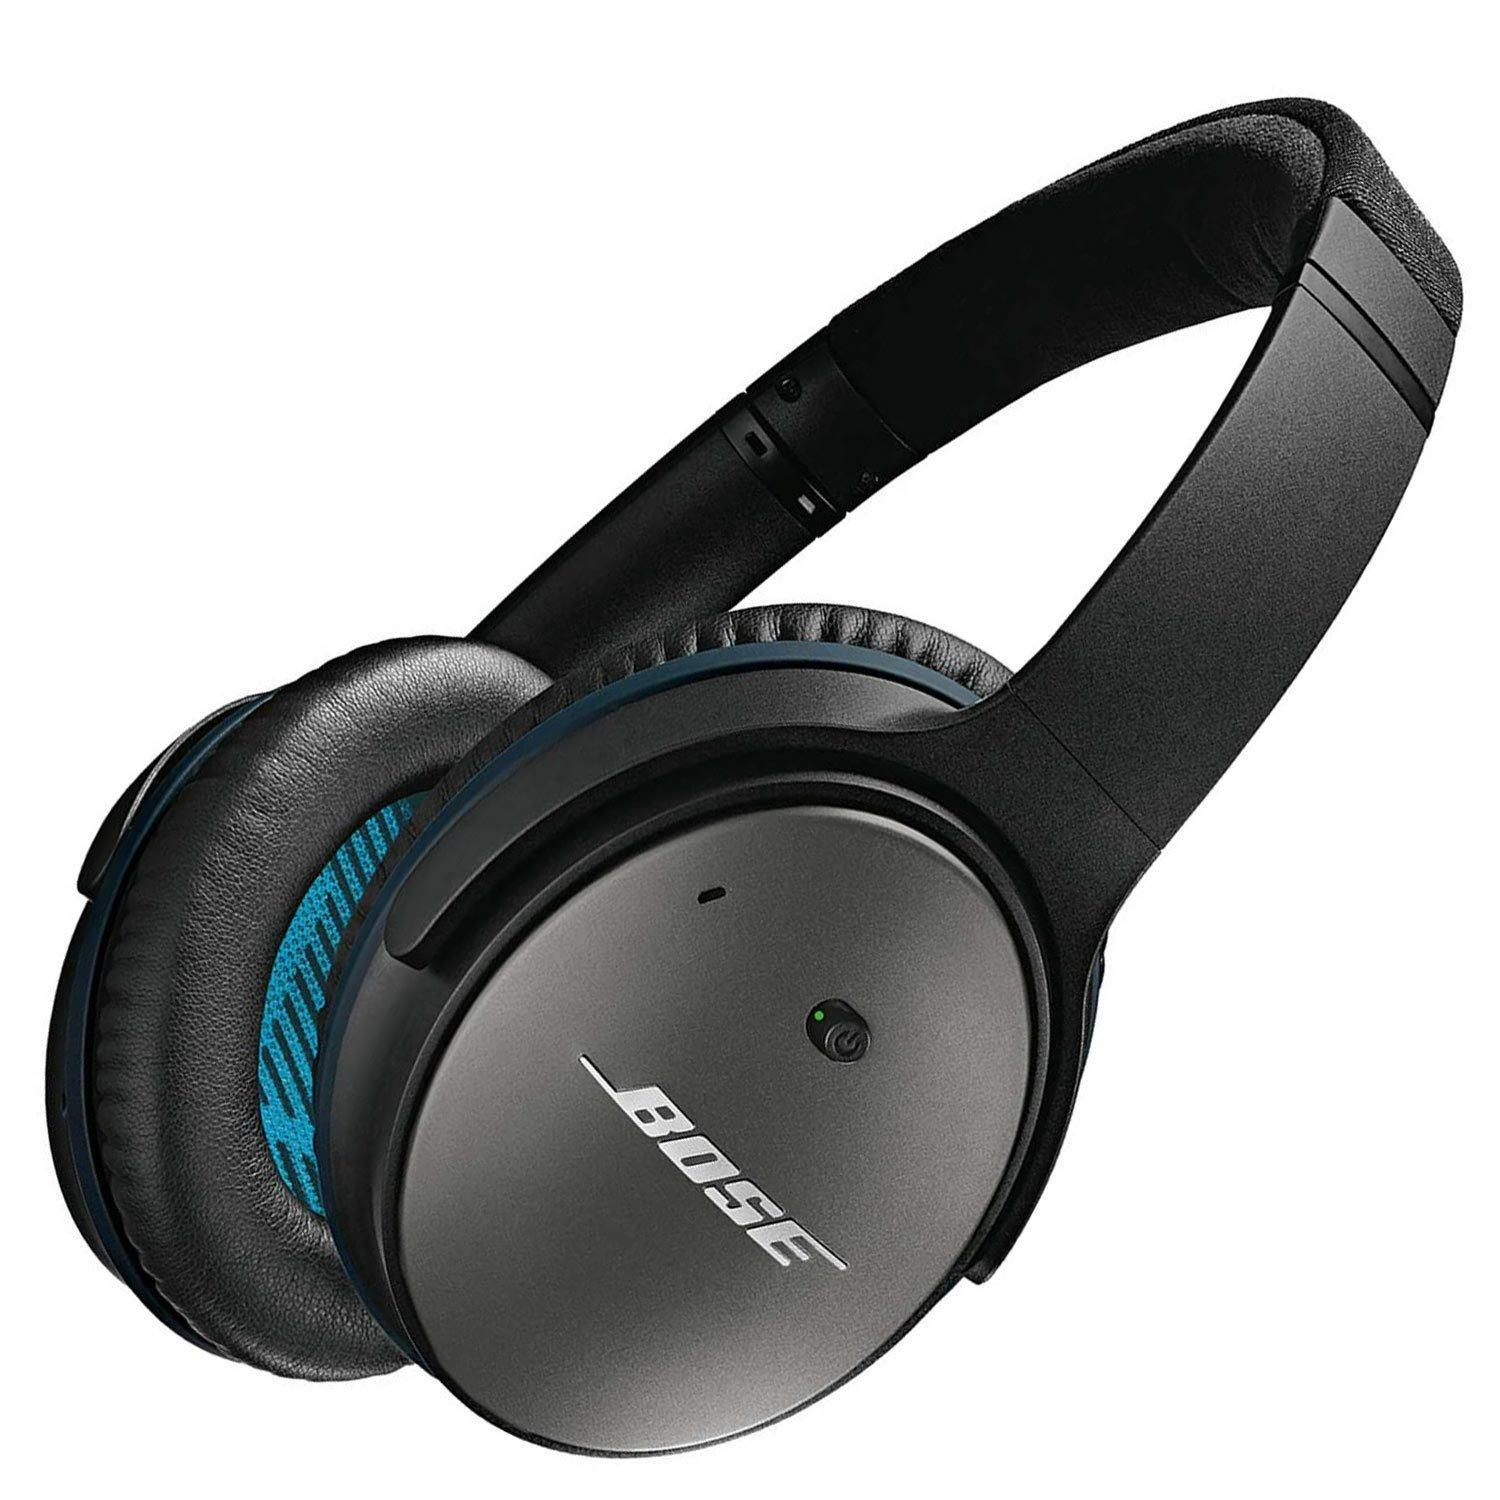 $251.95 in total! Bose QuietComfort 25 Acoustic Noise Cancelling Headphones for Apple devices- Black